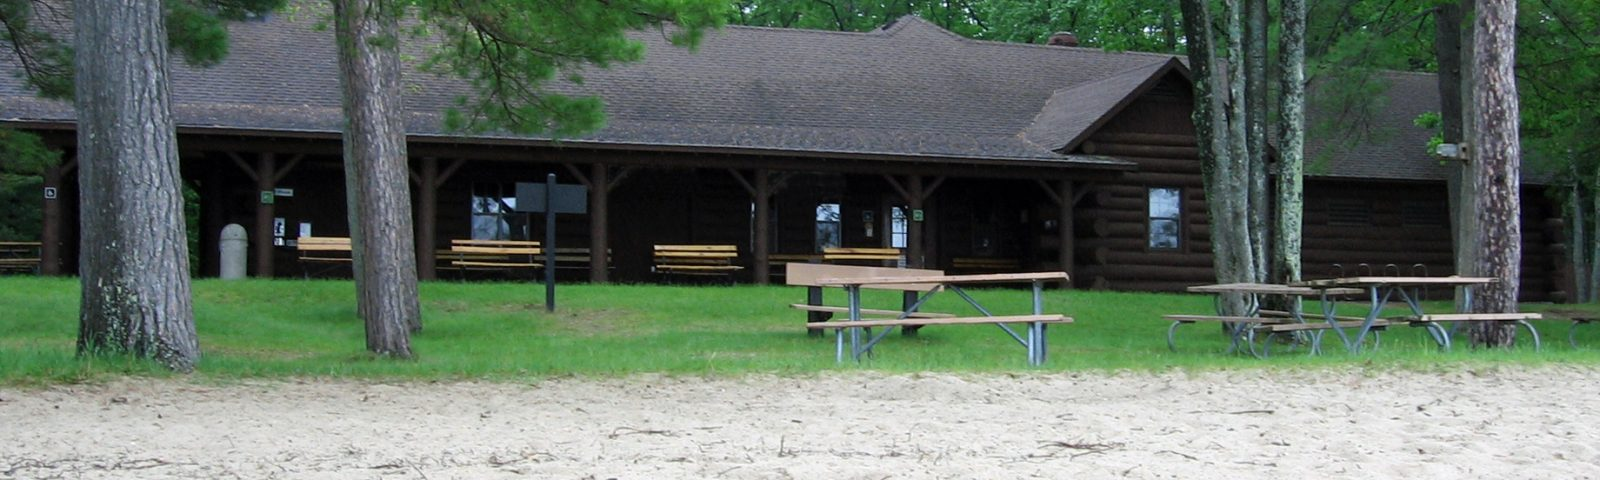 South Higgins Lake Park Store